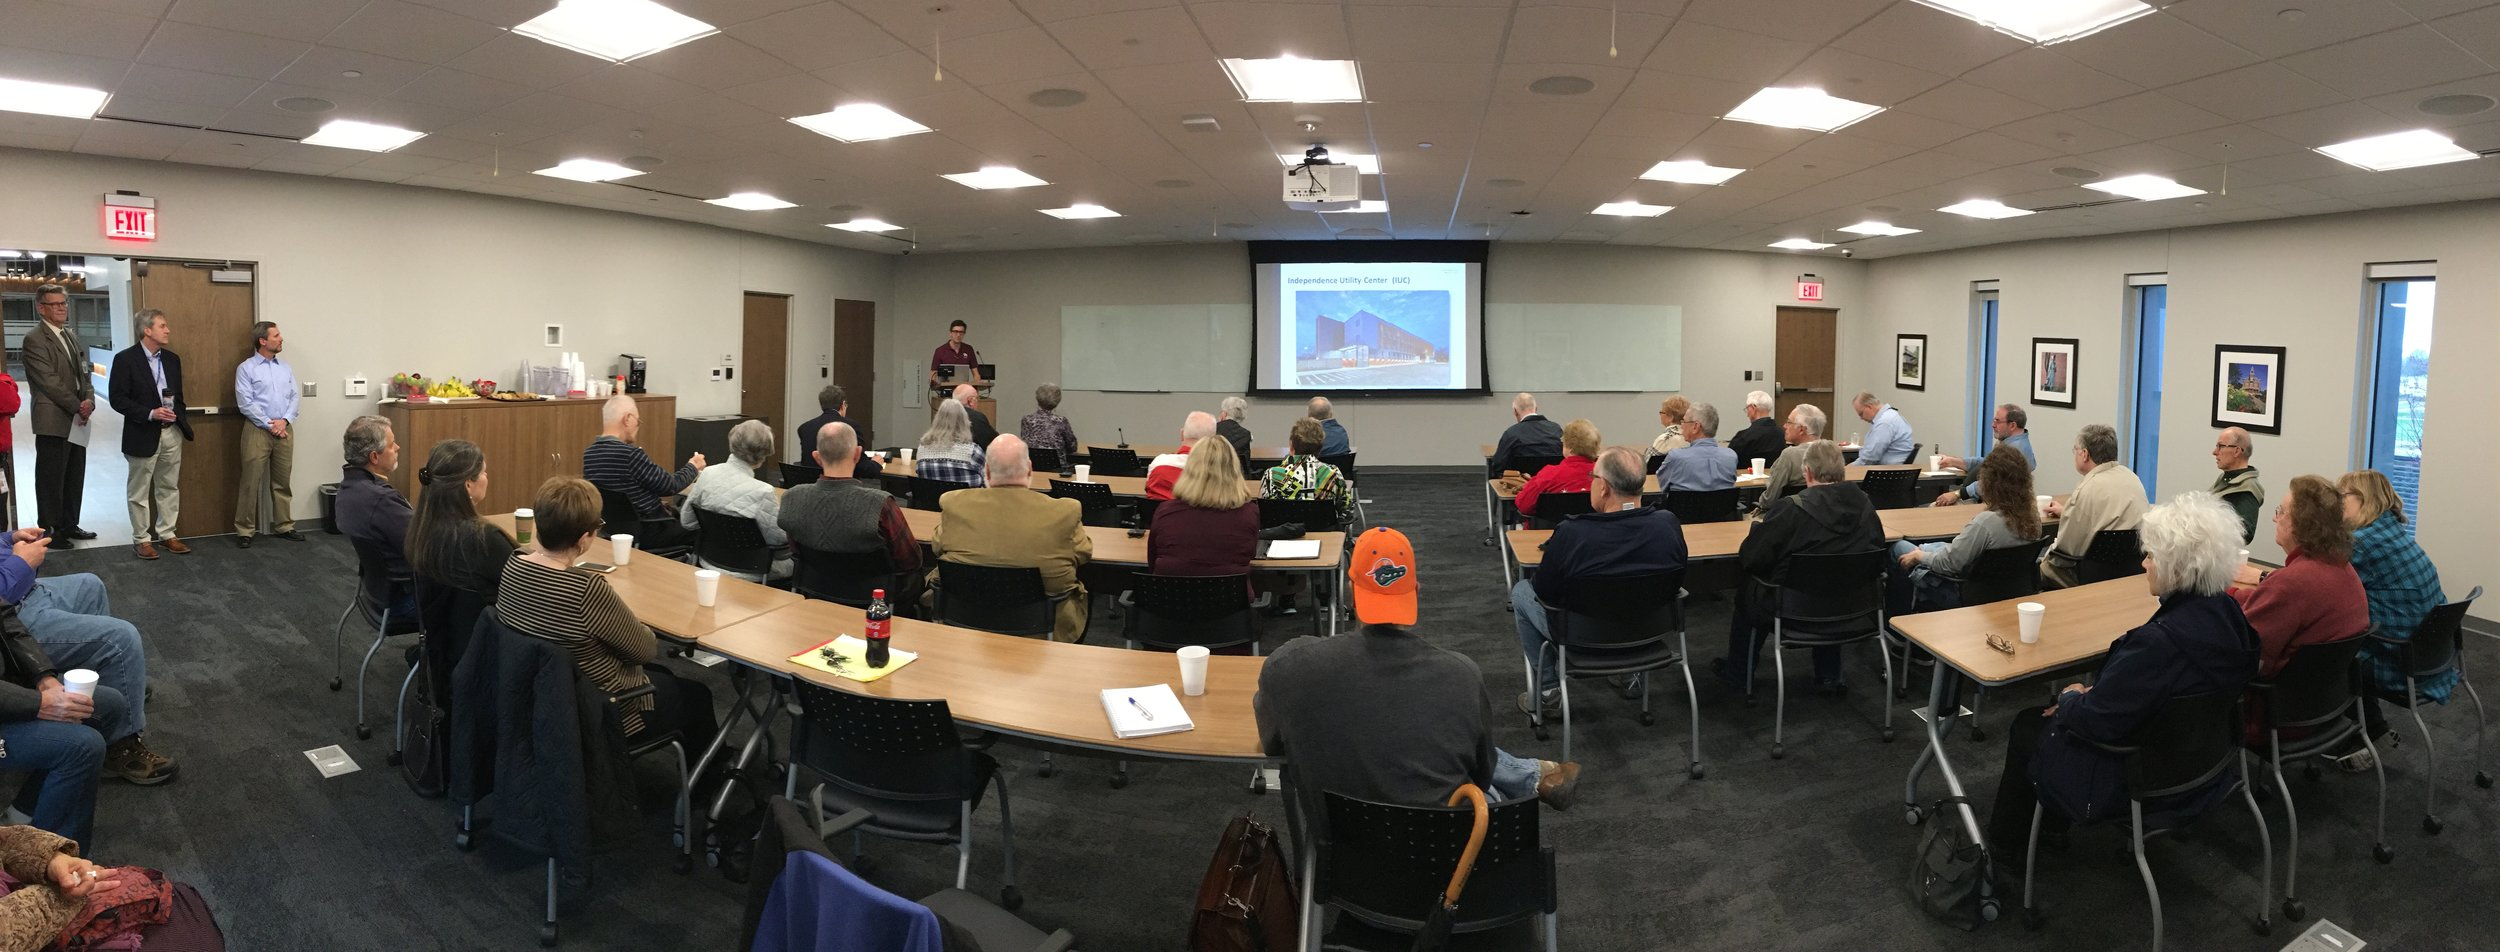 March 25 forum held at the new city of Independence utility center